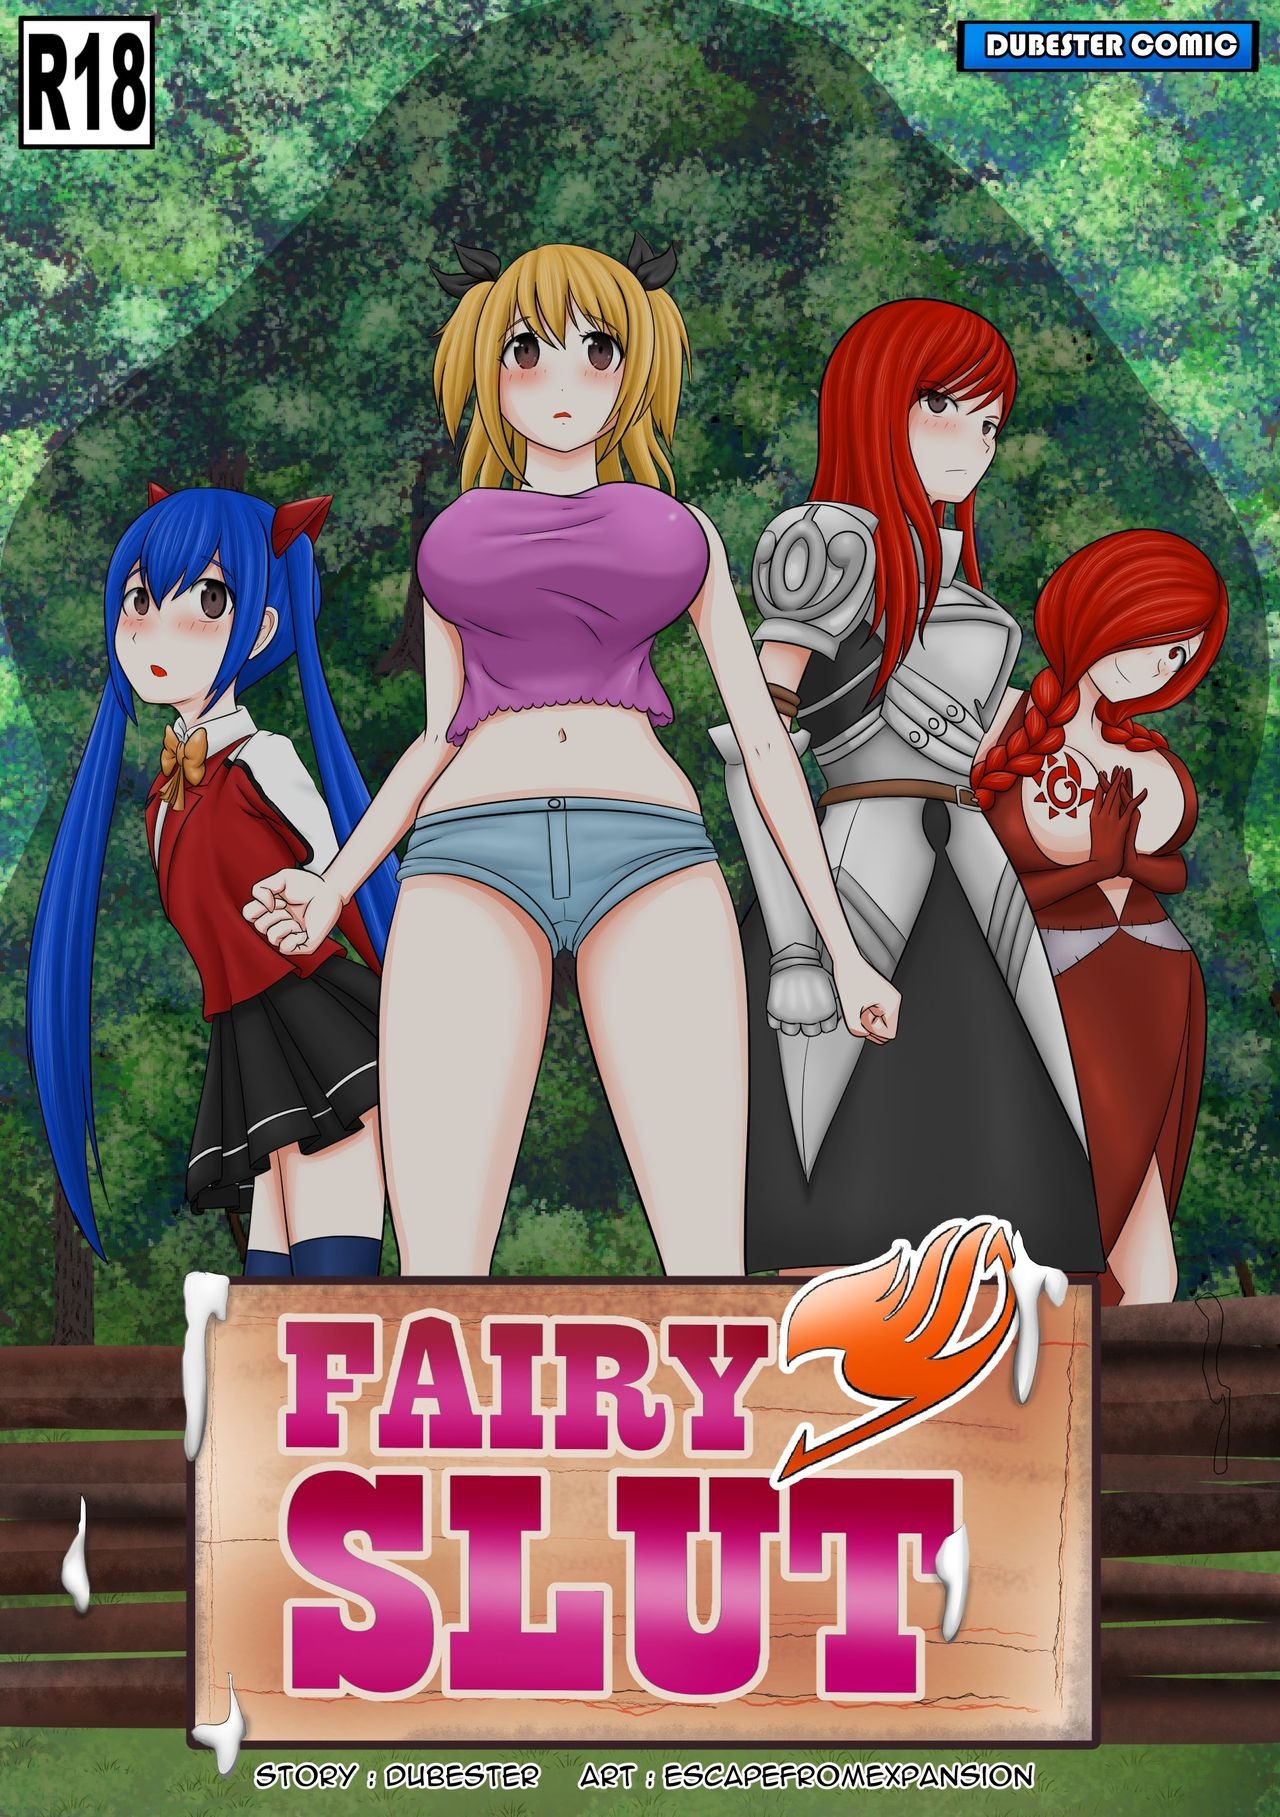 Fairy Slut- EscapeFromExpansion image 1